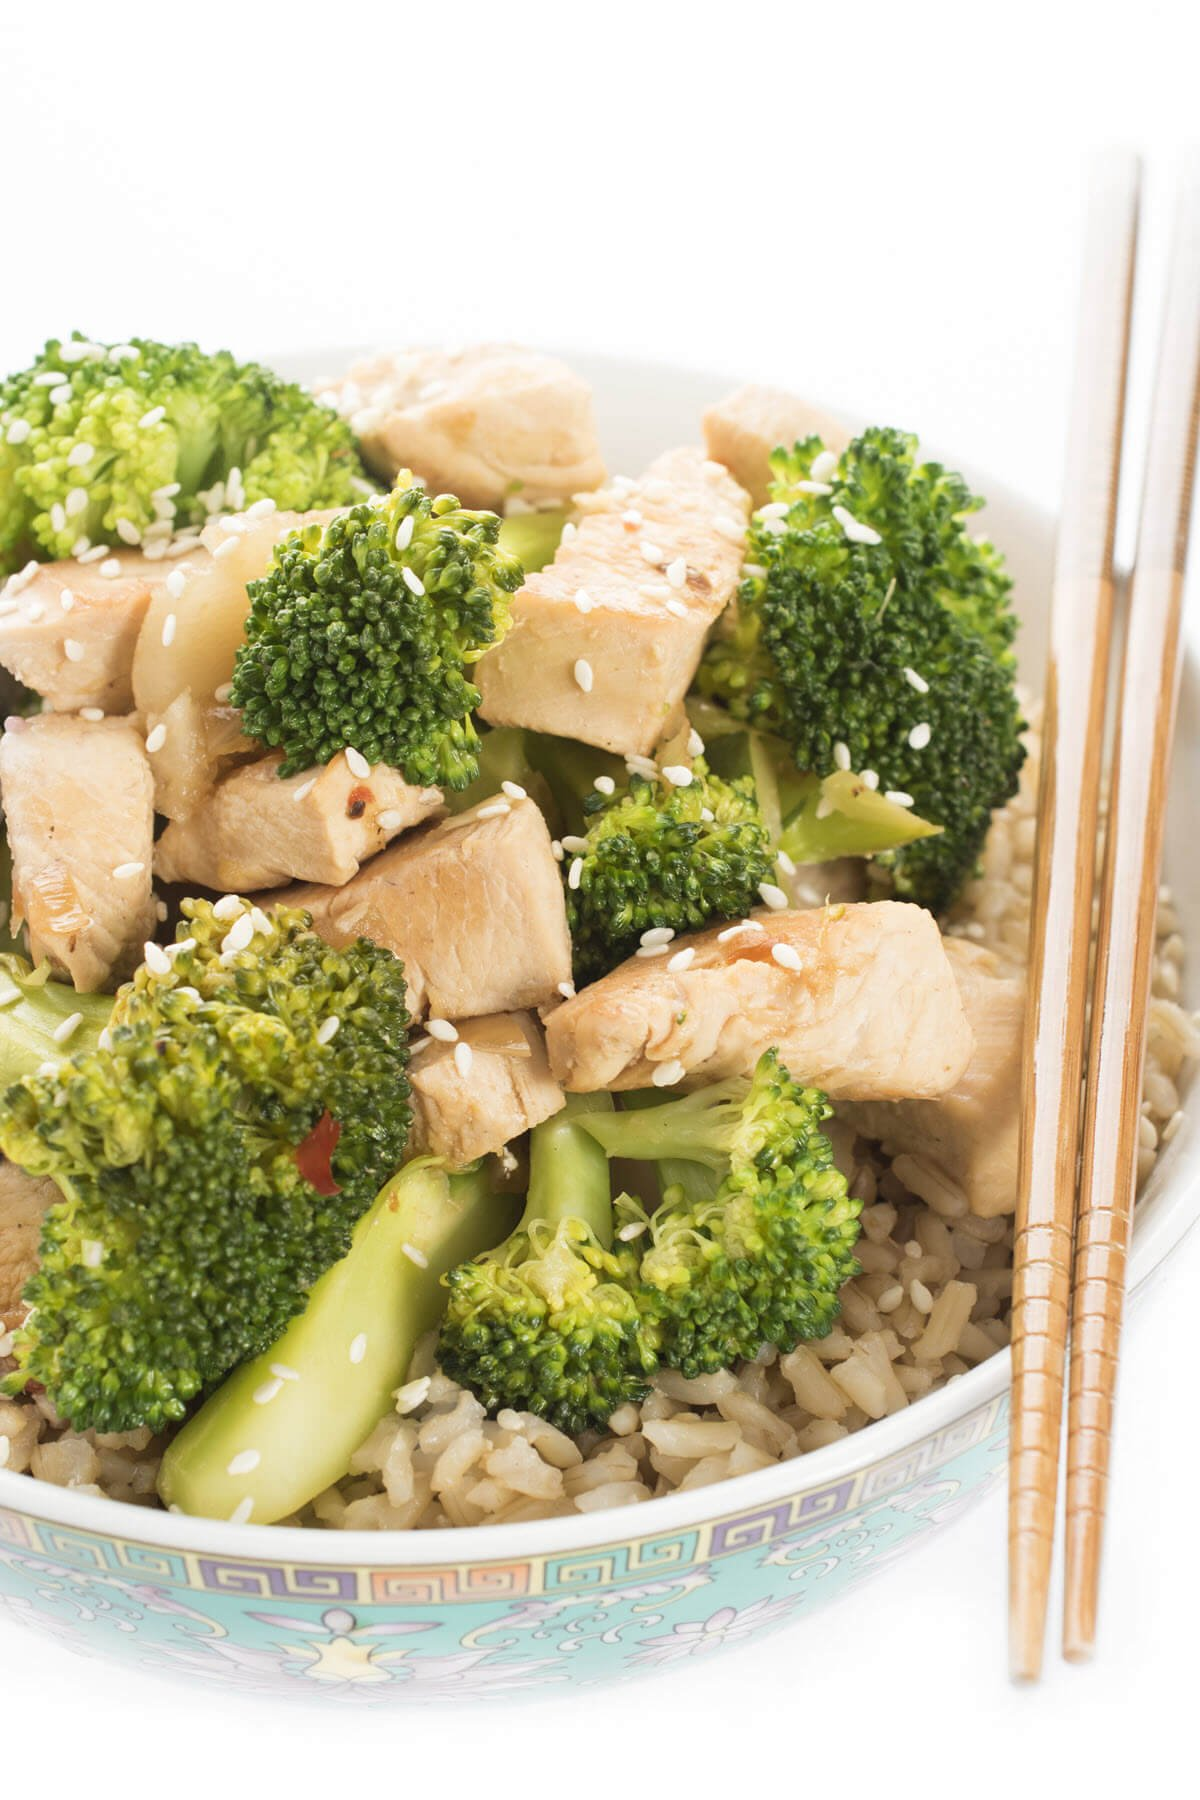 Chicken and Broccoli in a bowl